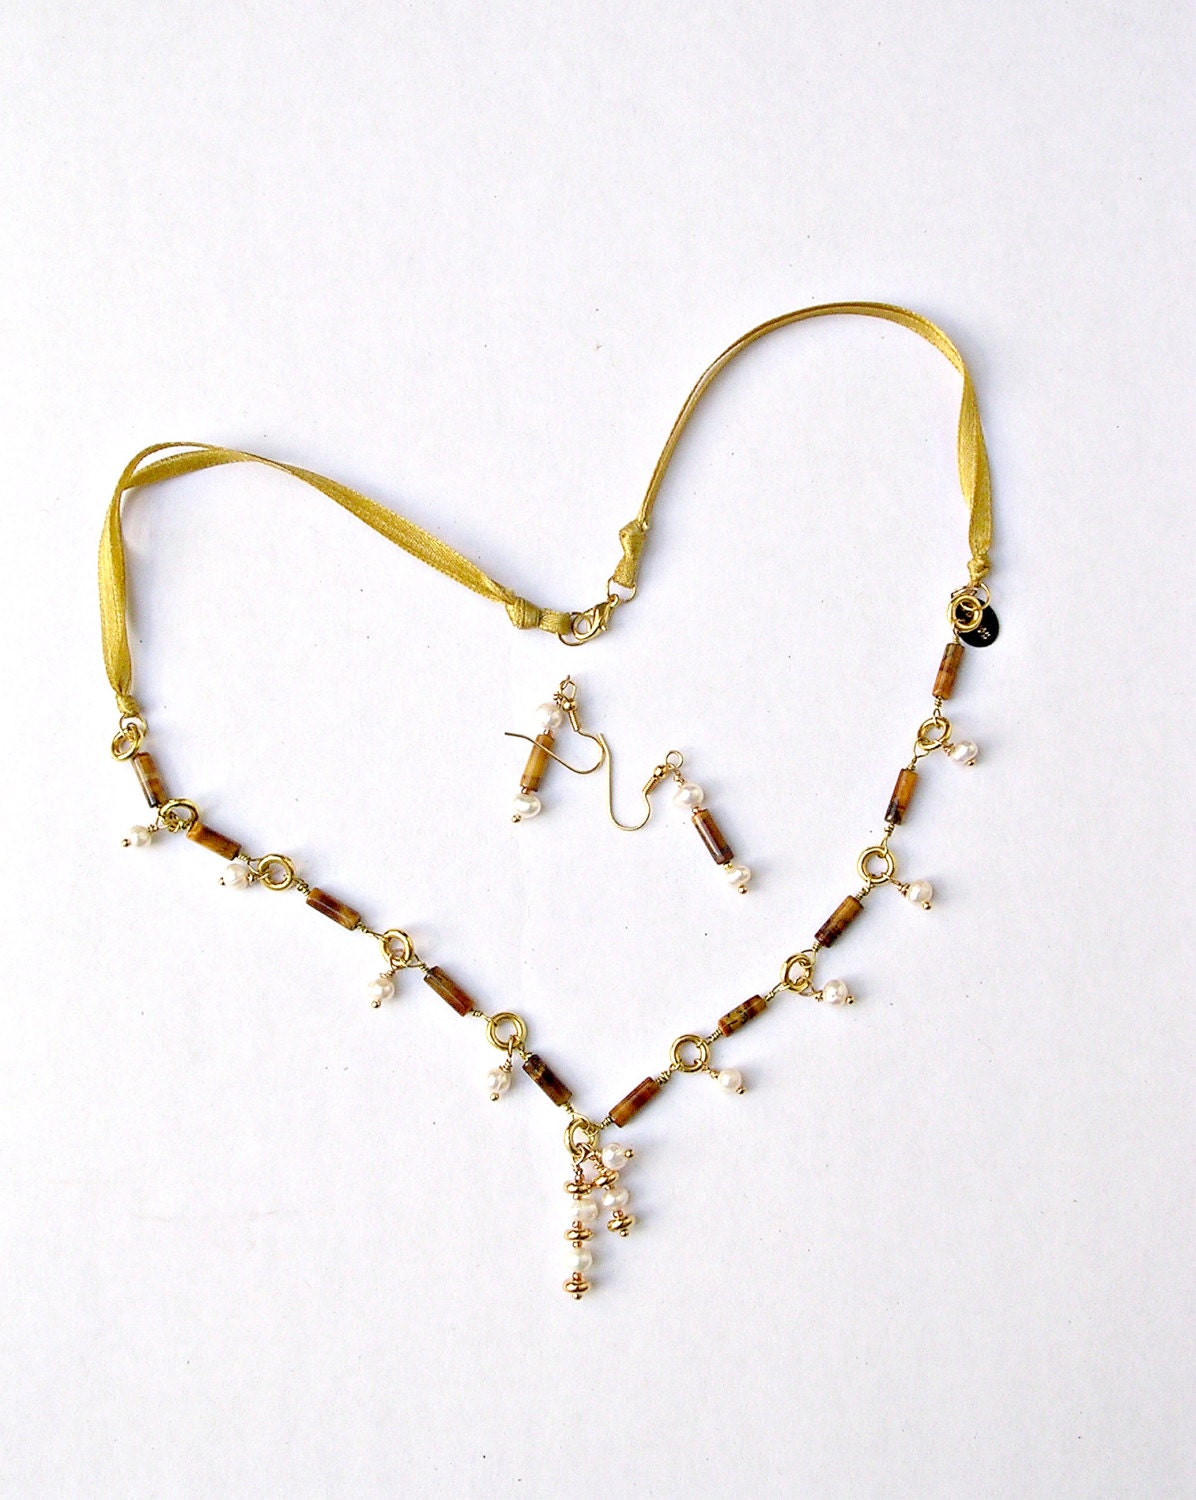 Boho Necklace with Freshwater Pearls with Chain and Pendant Charms